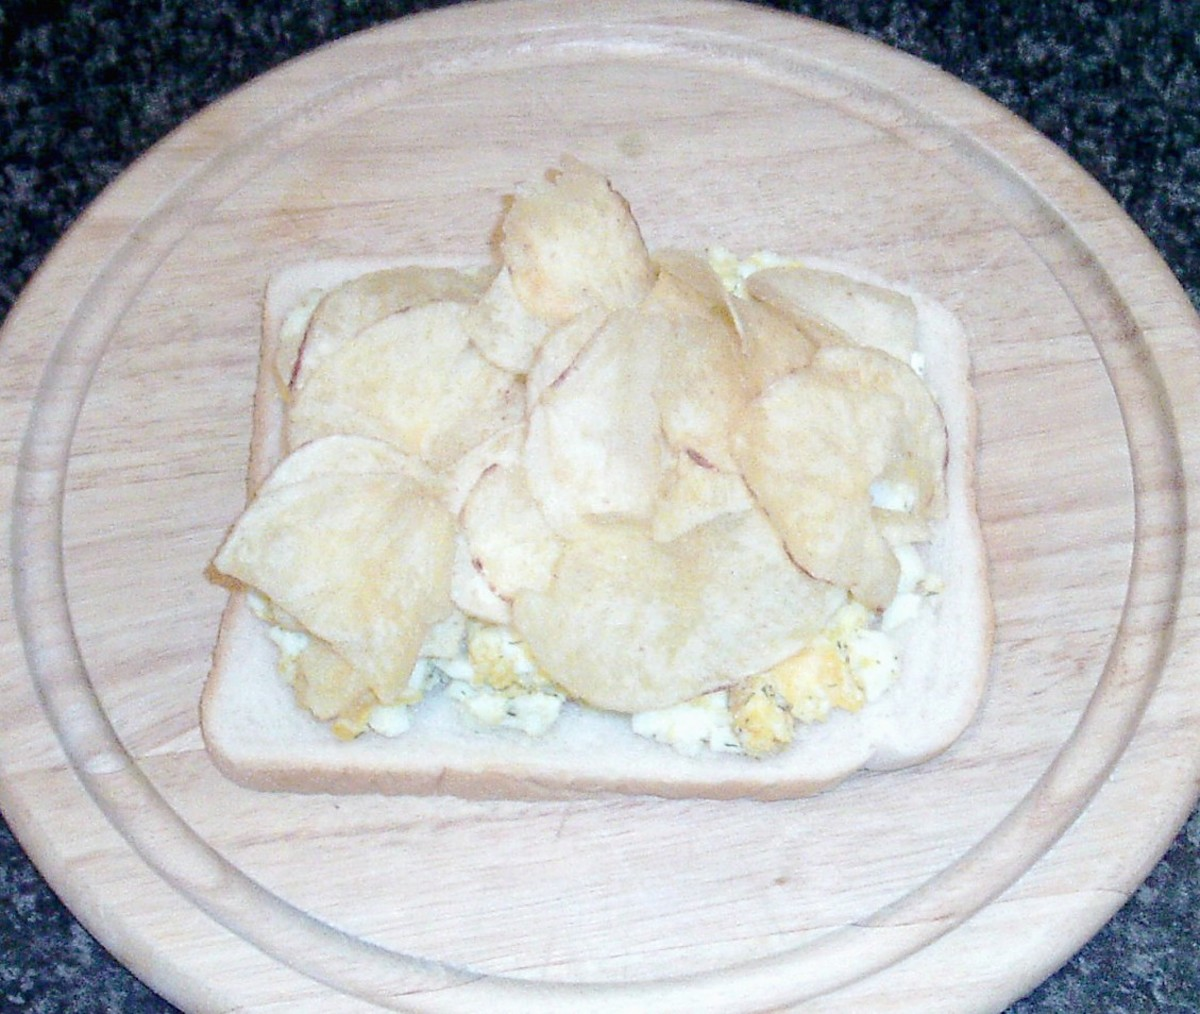 Crisps arranged on top of egg